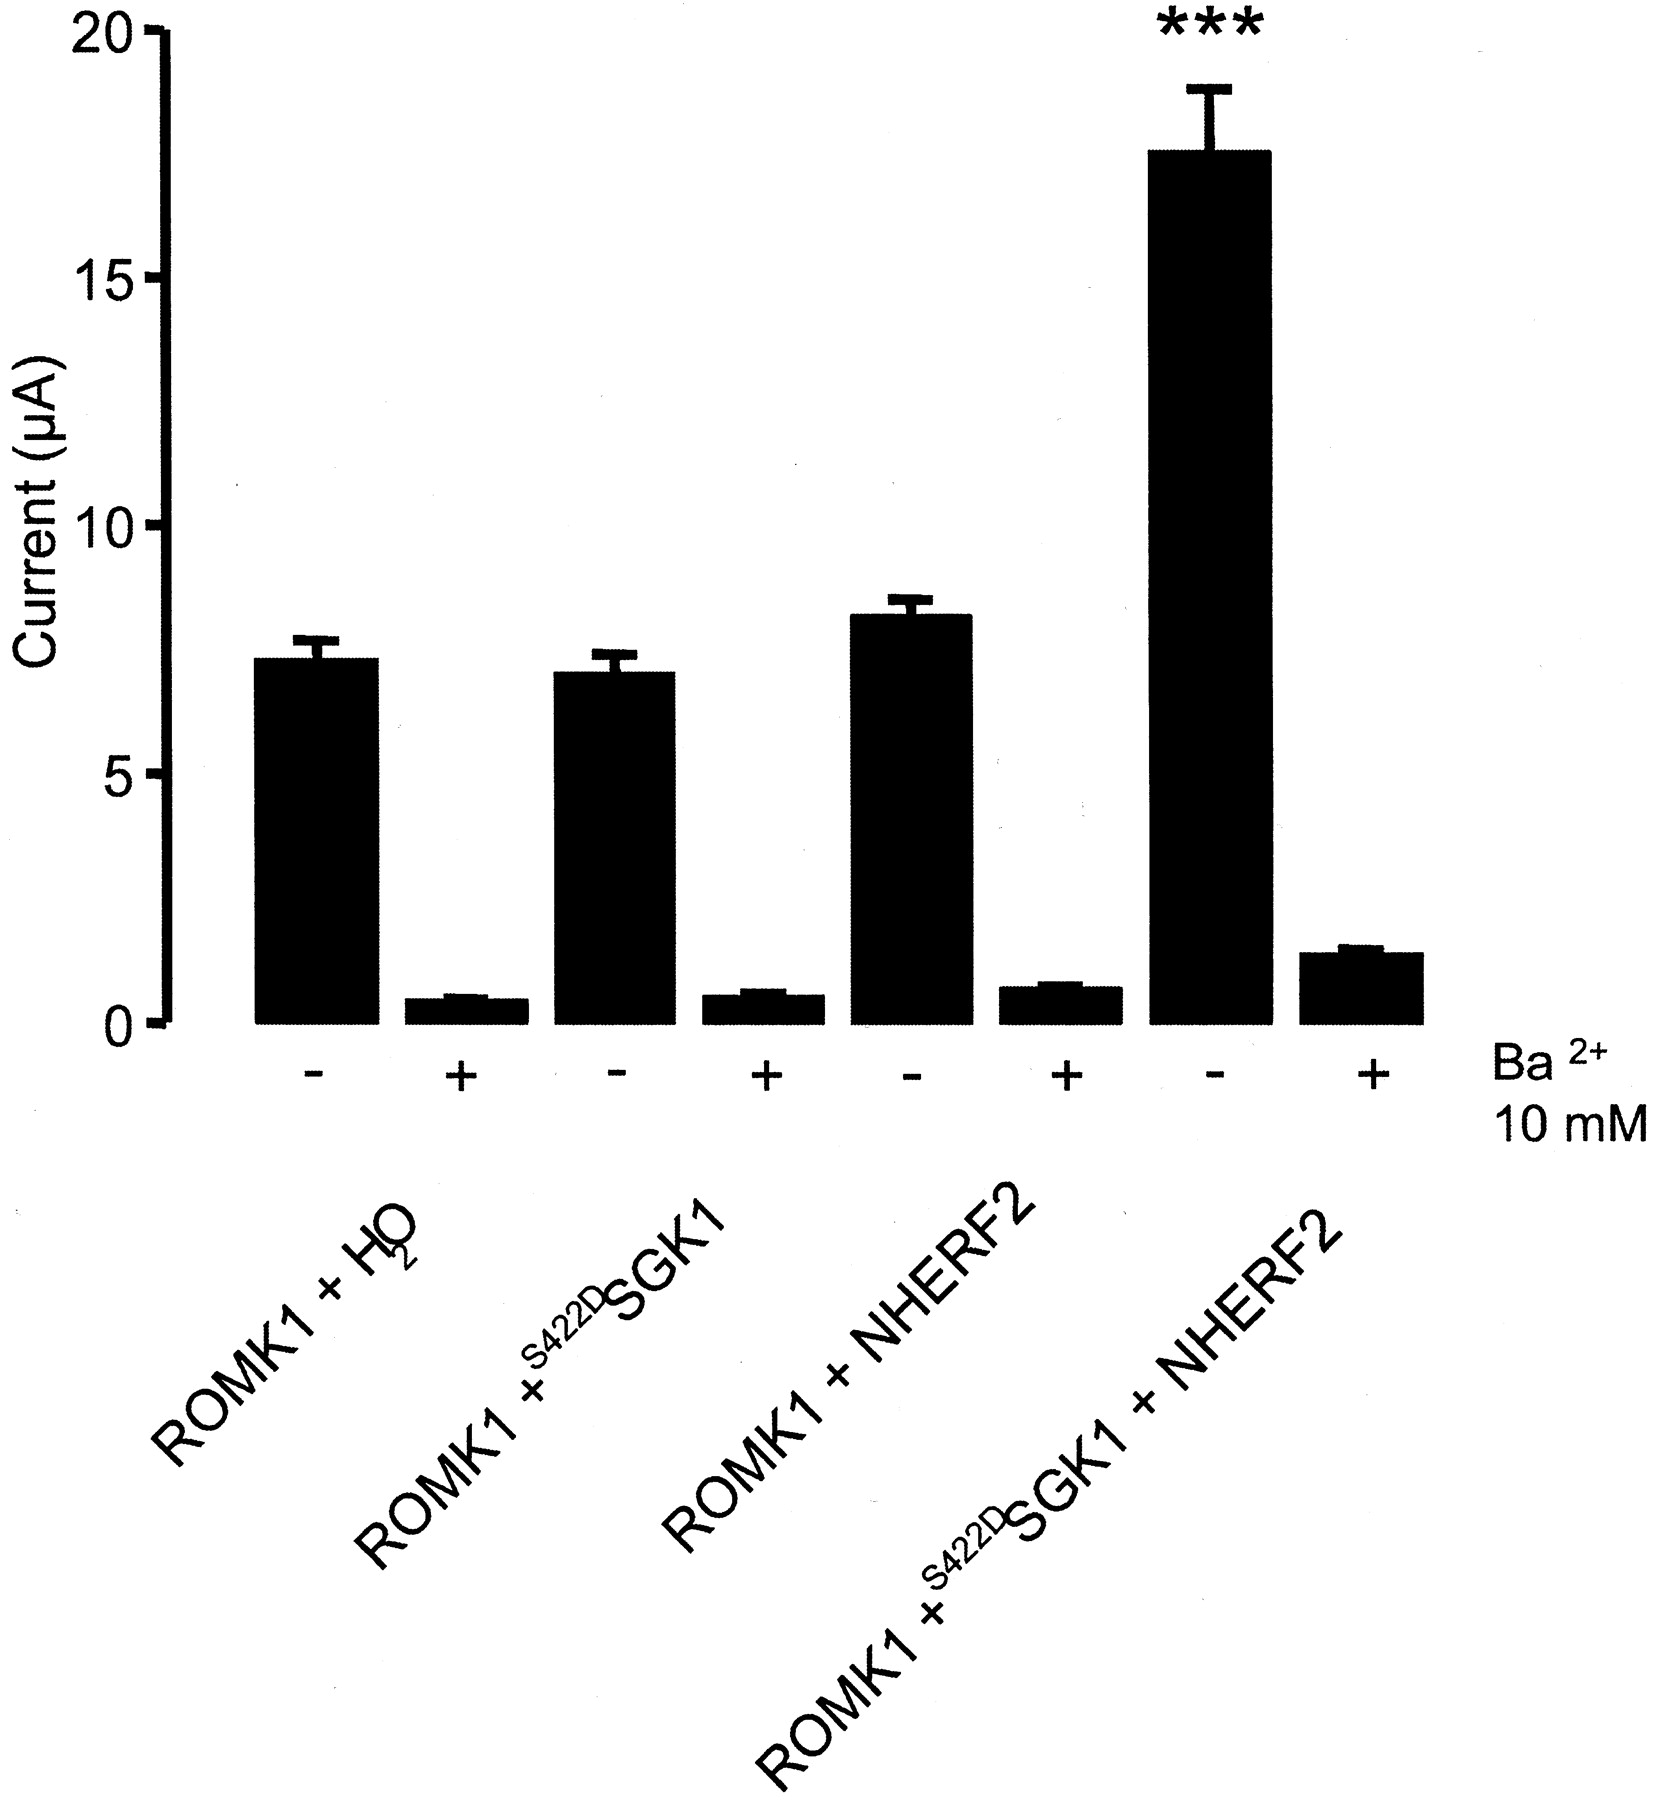 The Serum And Glucocorticoid Inducible Kinase Sgk1 And The Na H Exchange Regulating Factor